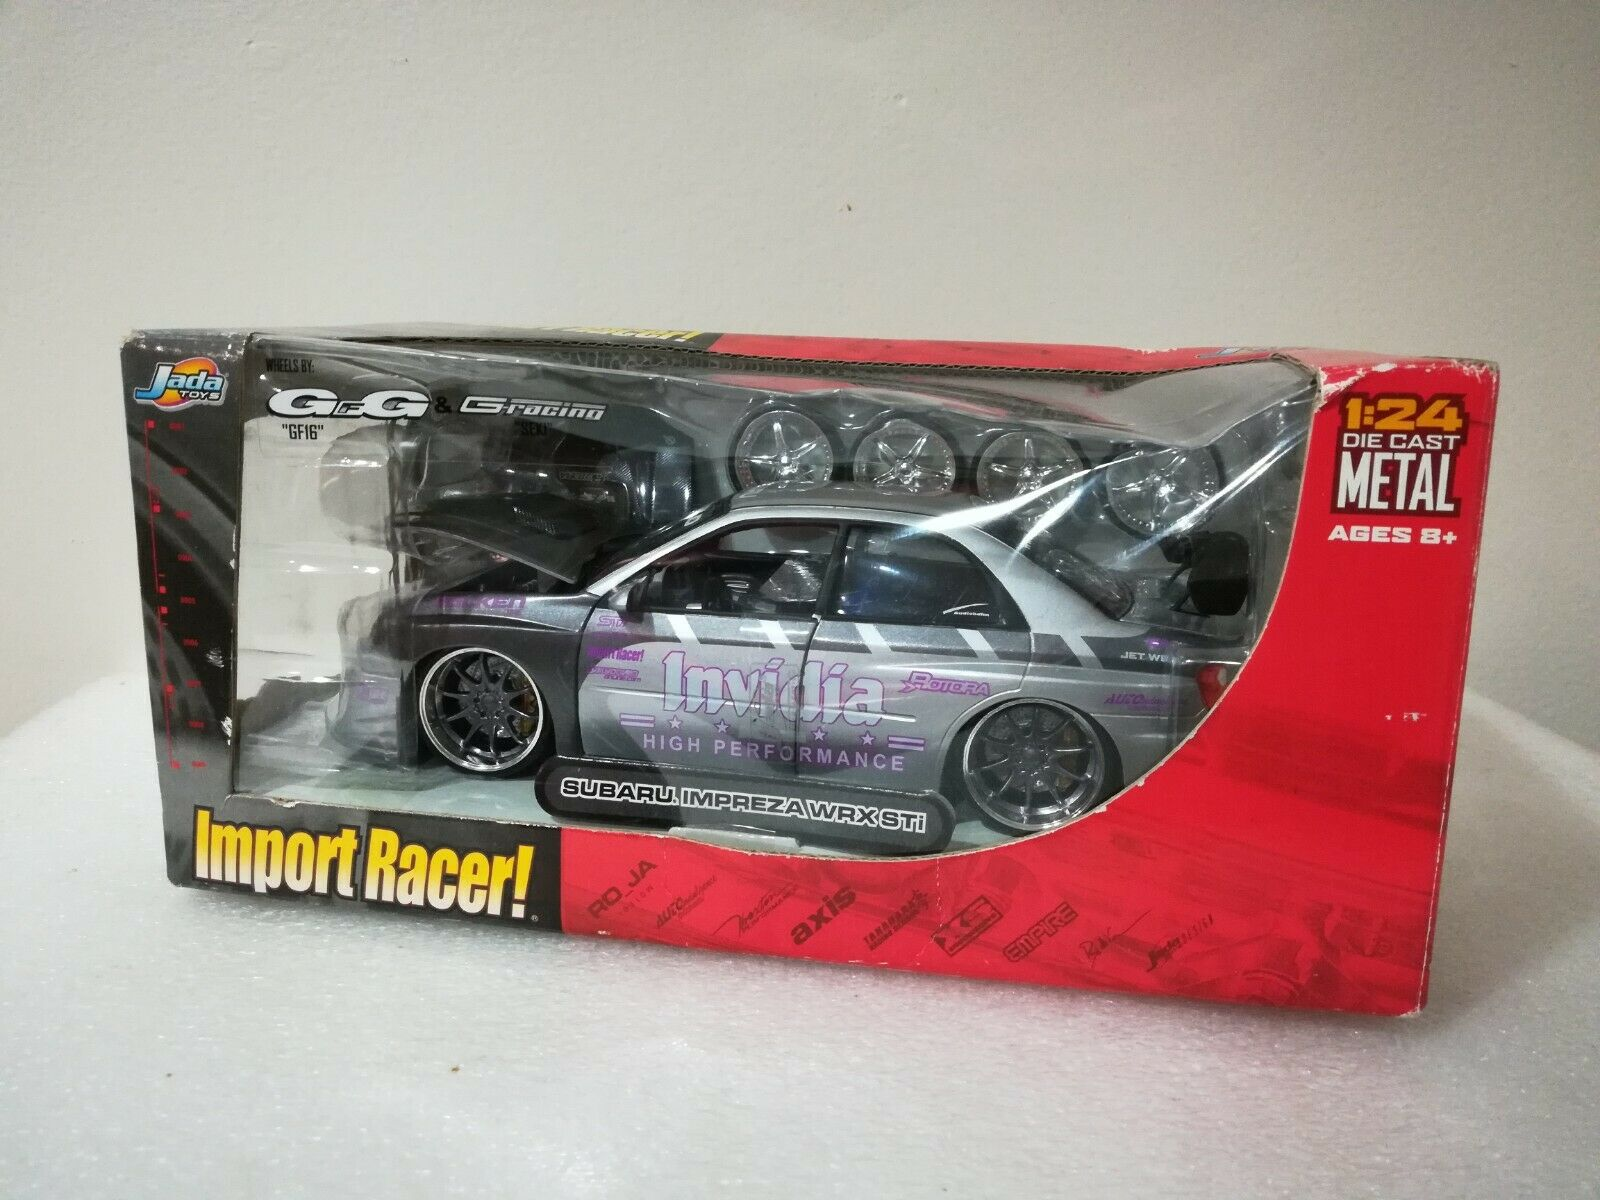 JADA Die Cast metal 1 24 IMPORT RACER SUBARU IMPREZA WRX STI Great Condition